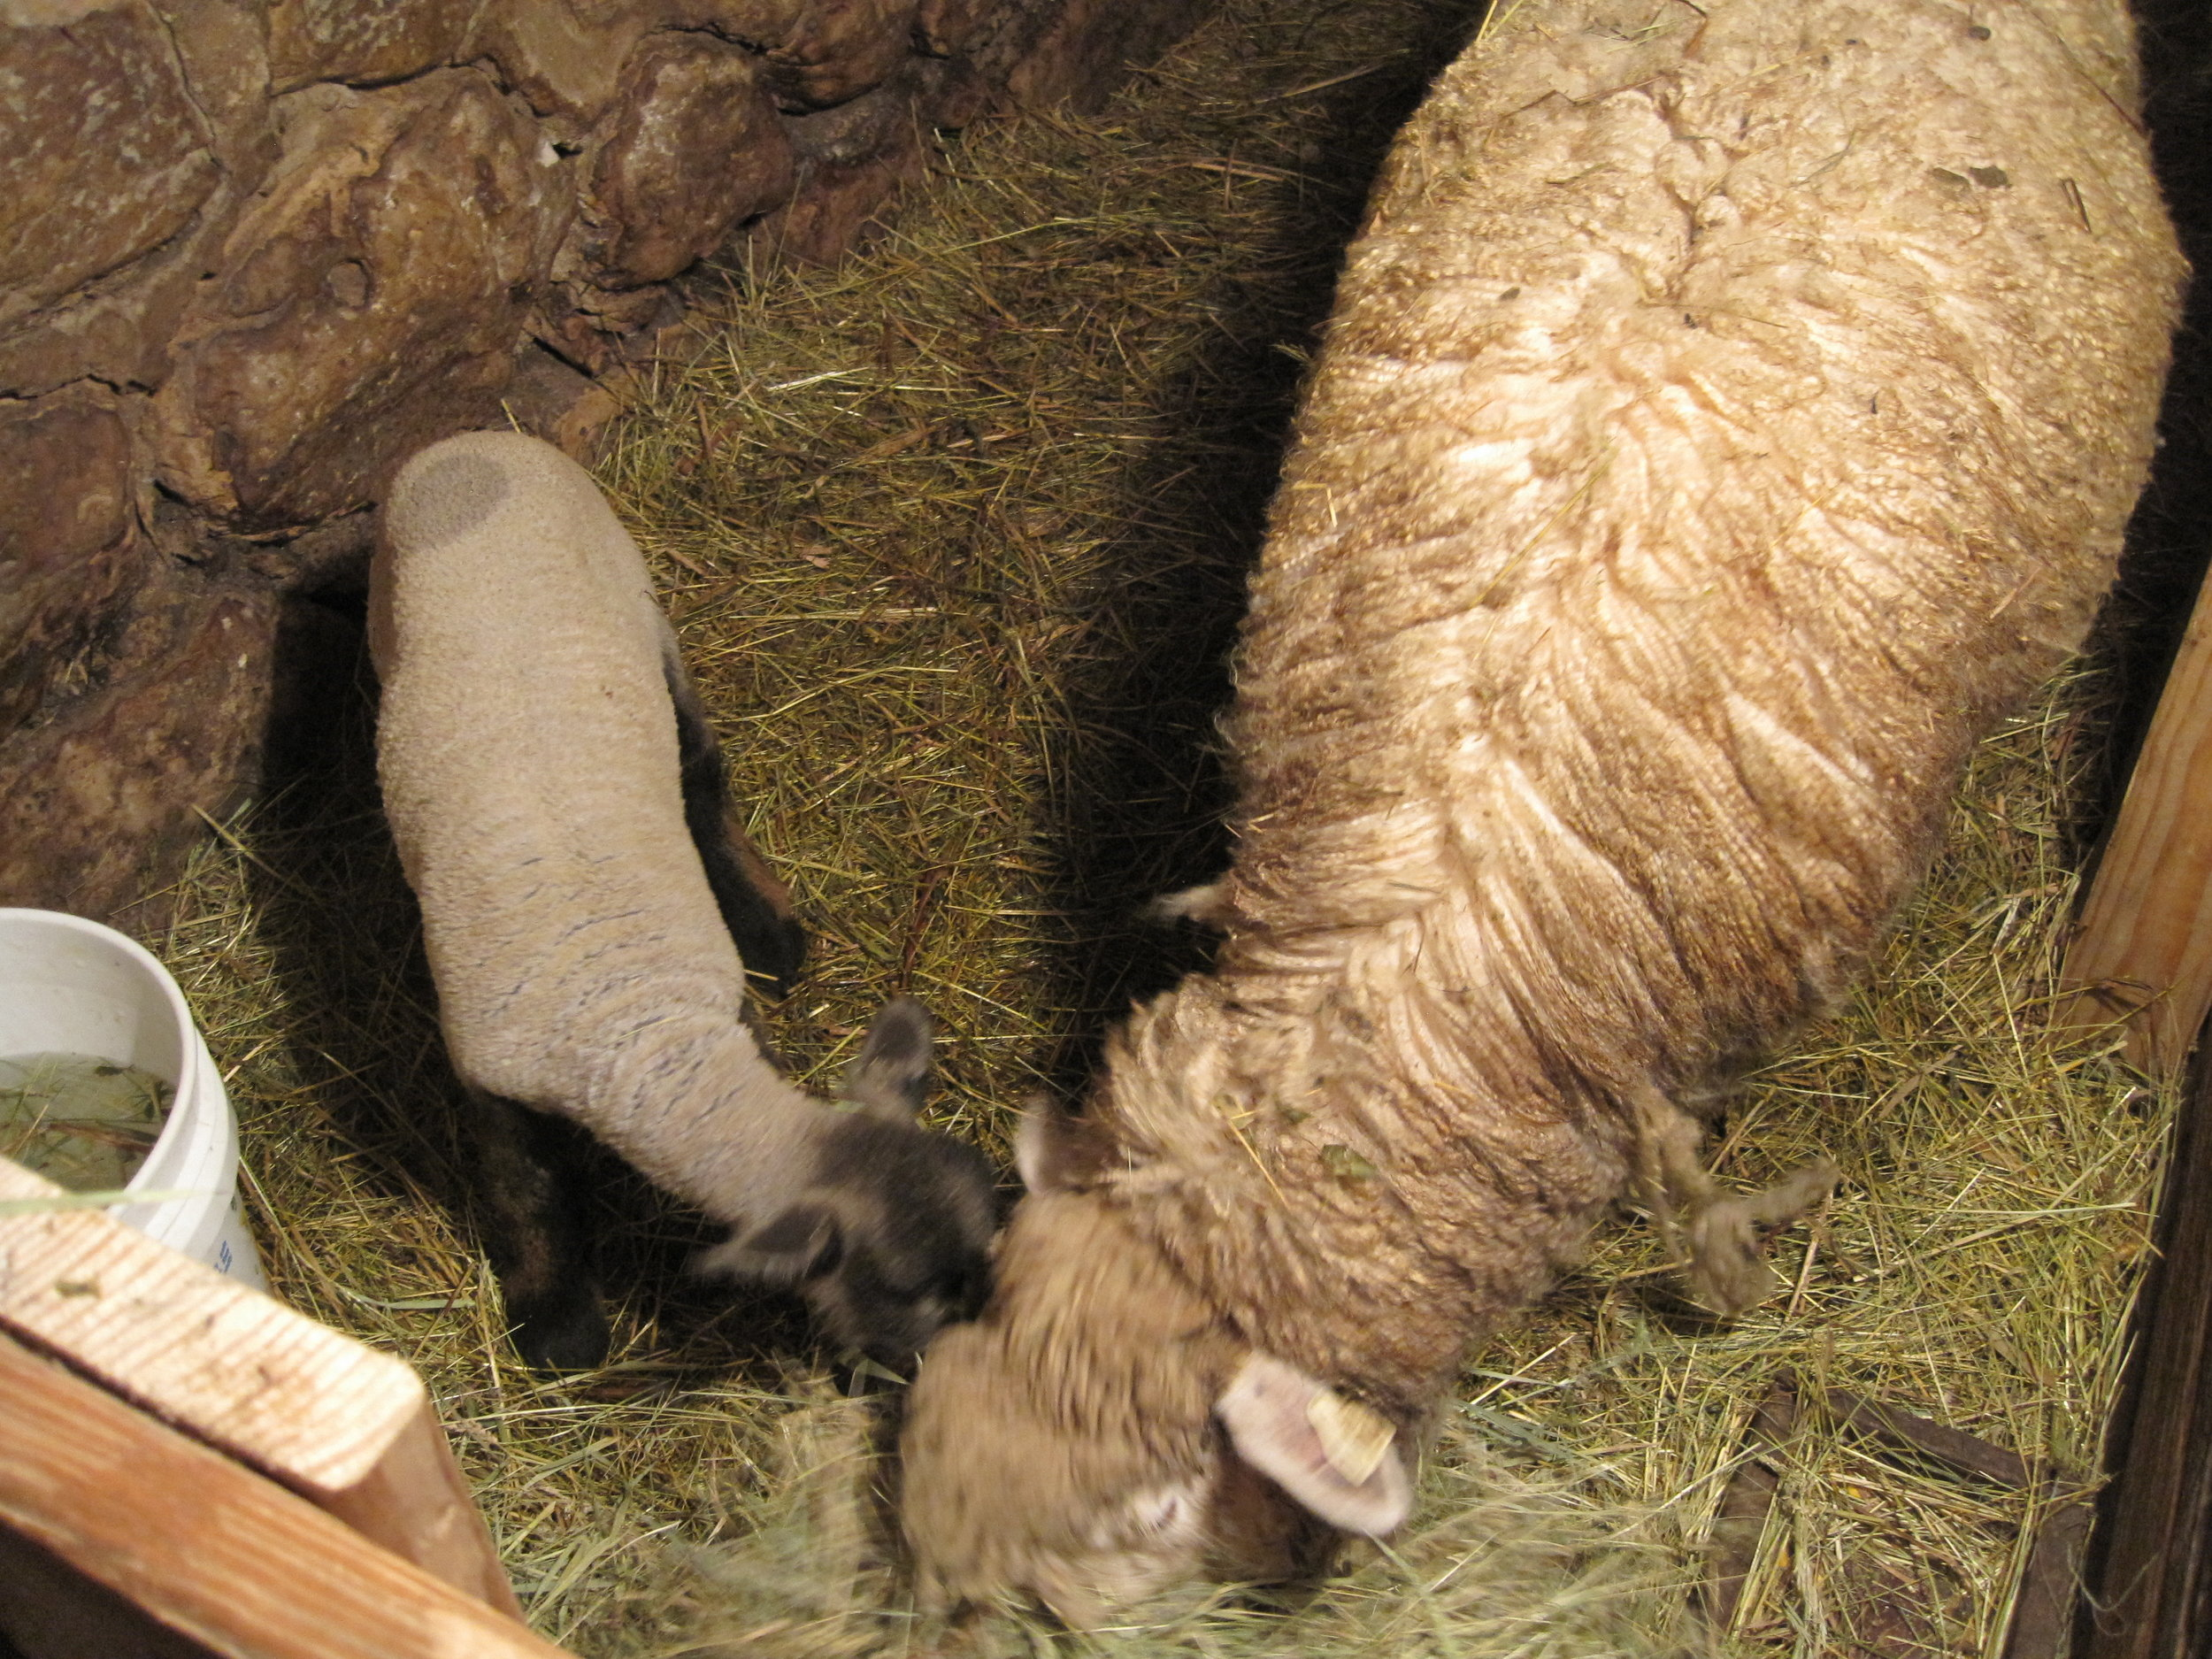 First lamb of 2018, born February 1. Mother and baby are doing just fine.